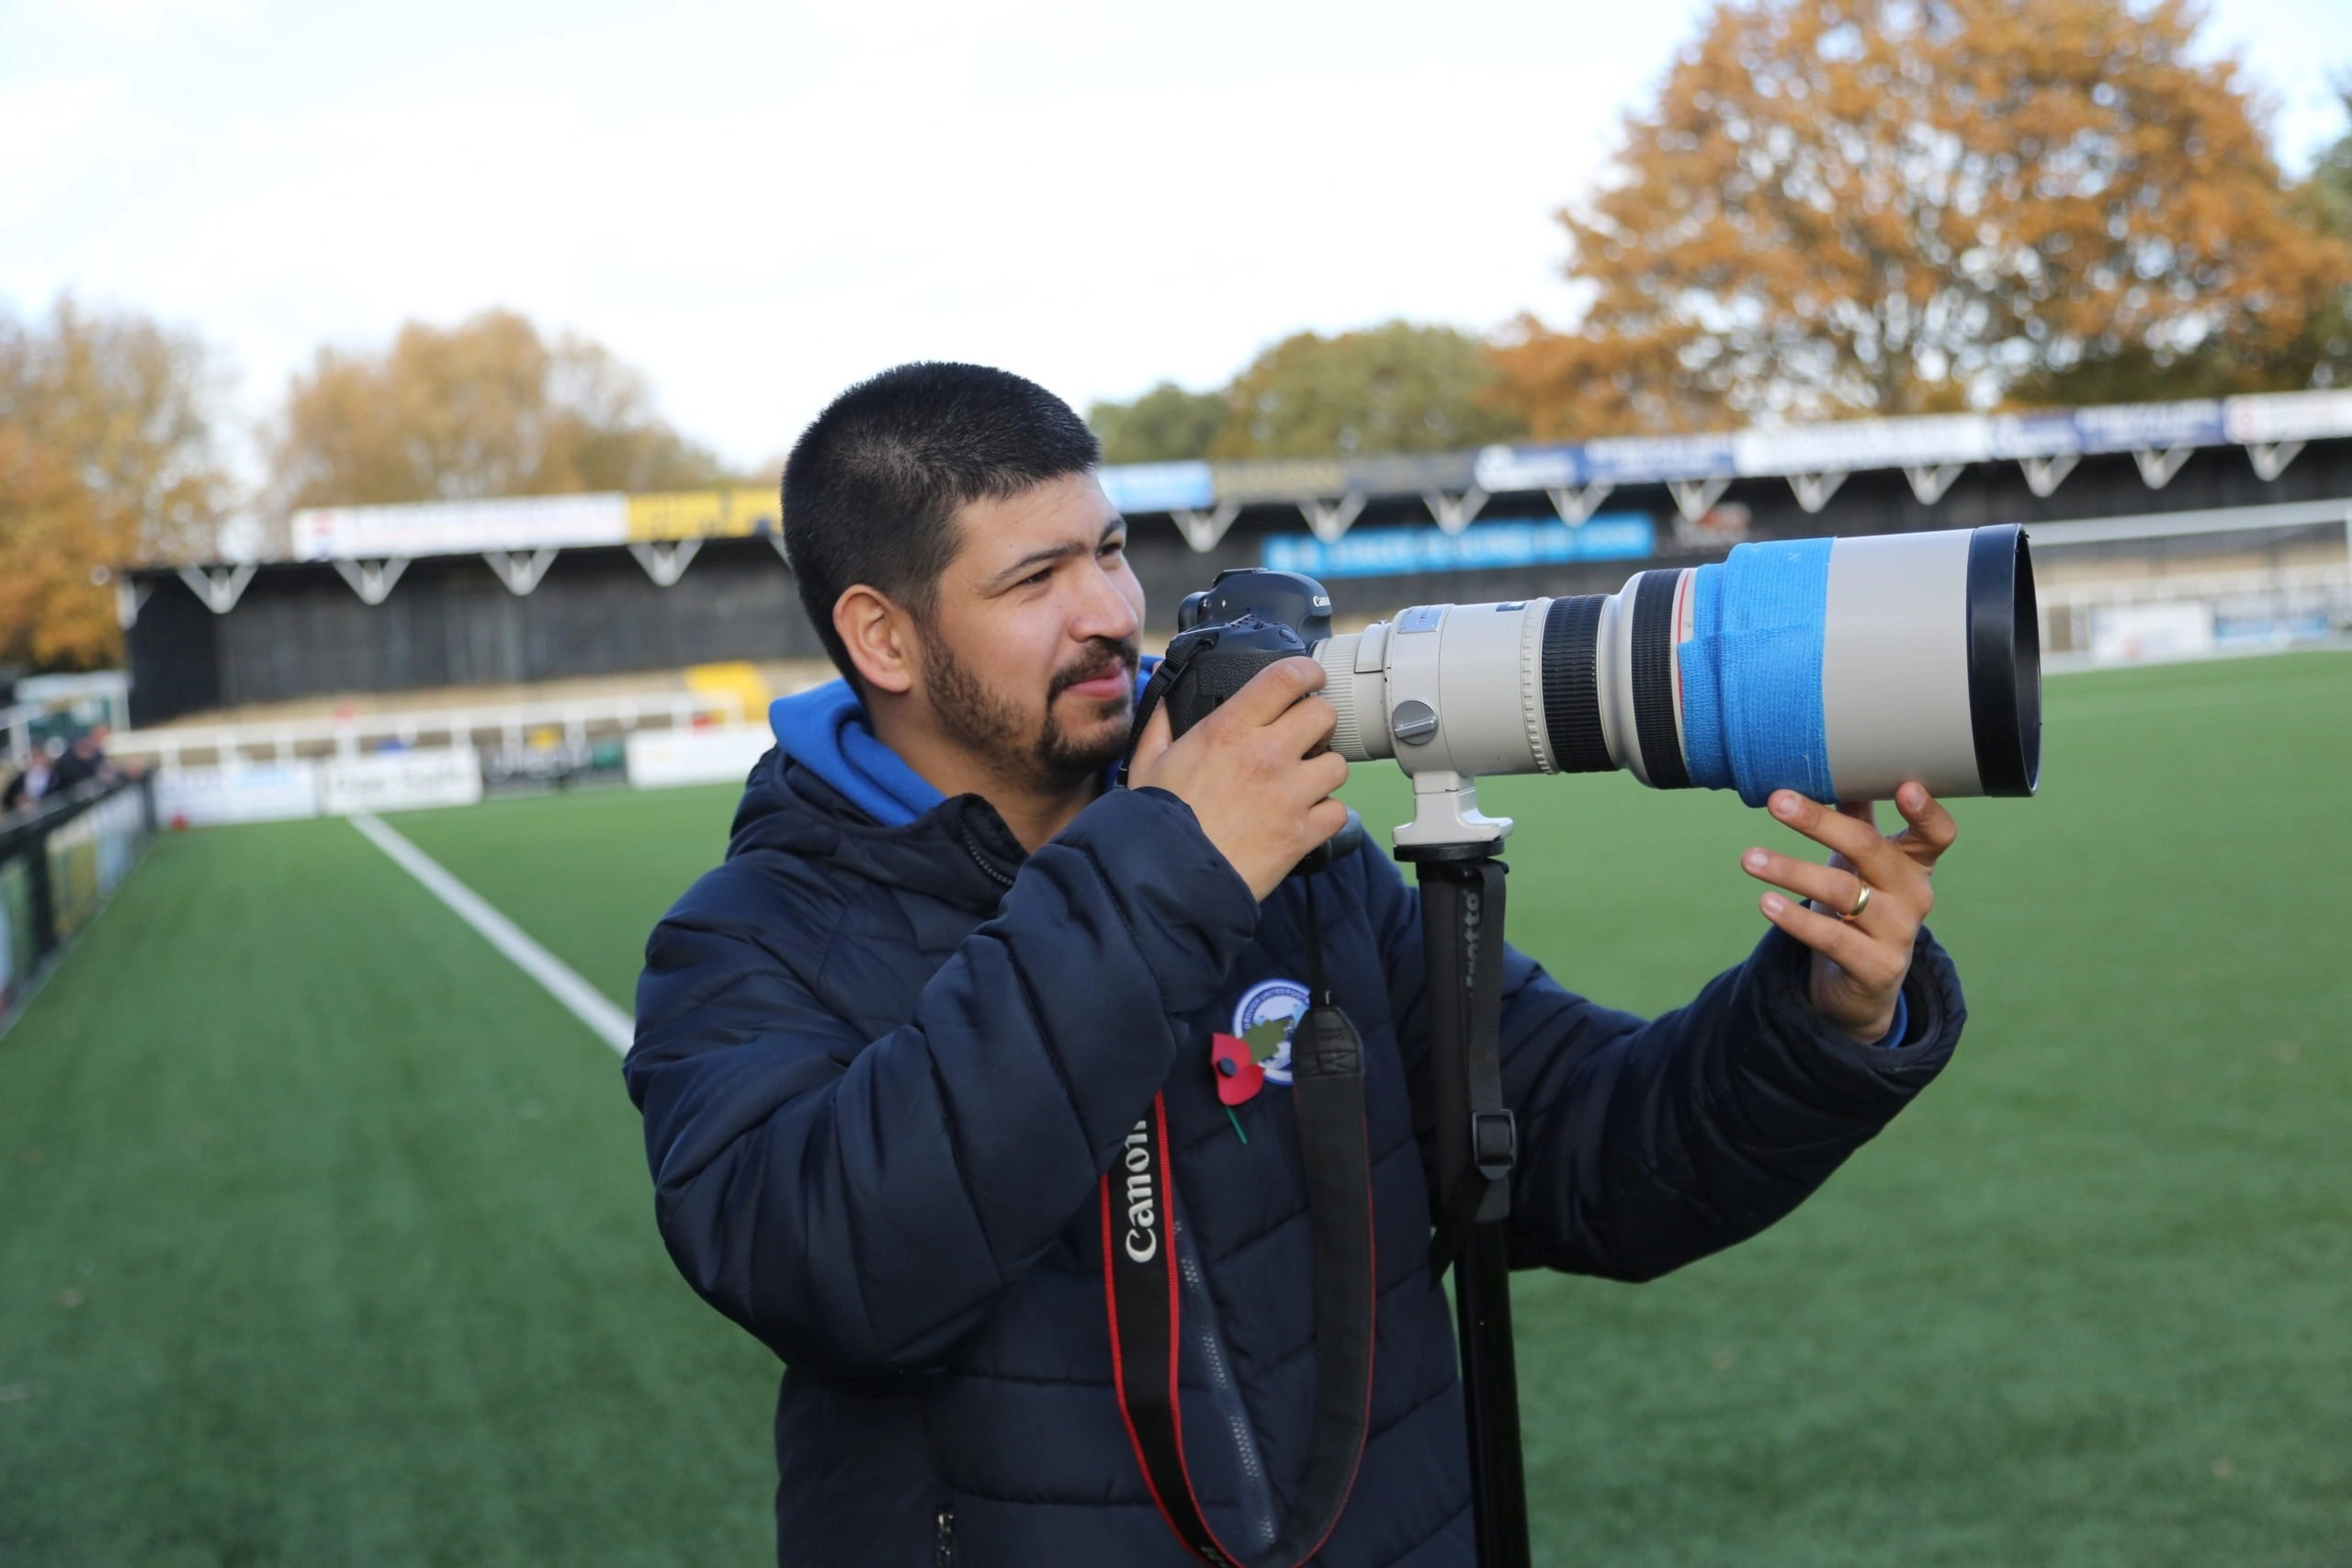 Joe Dent | Club Photographer, Programme Editor and Videographer